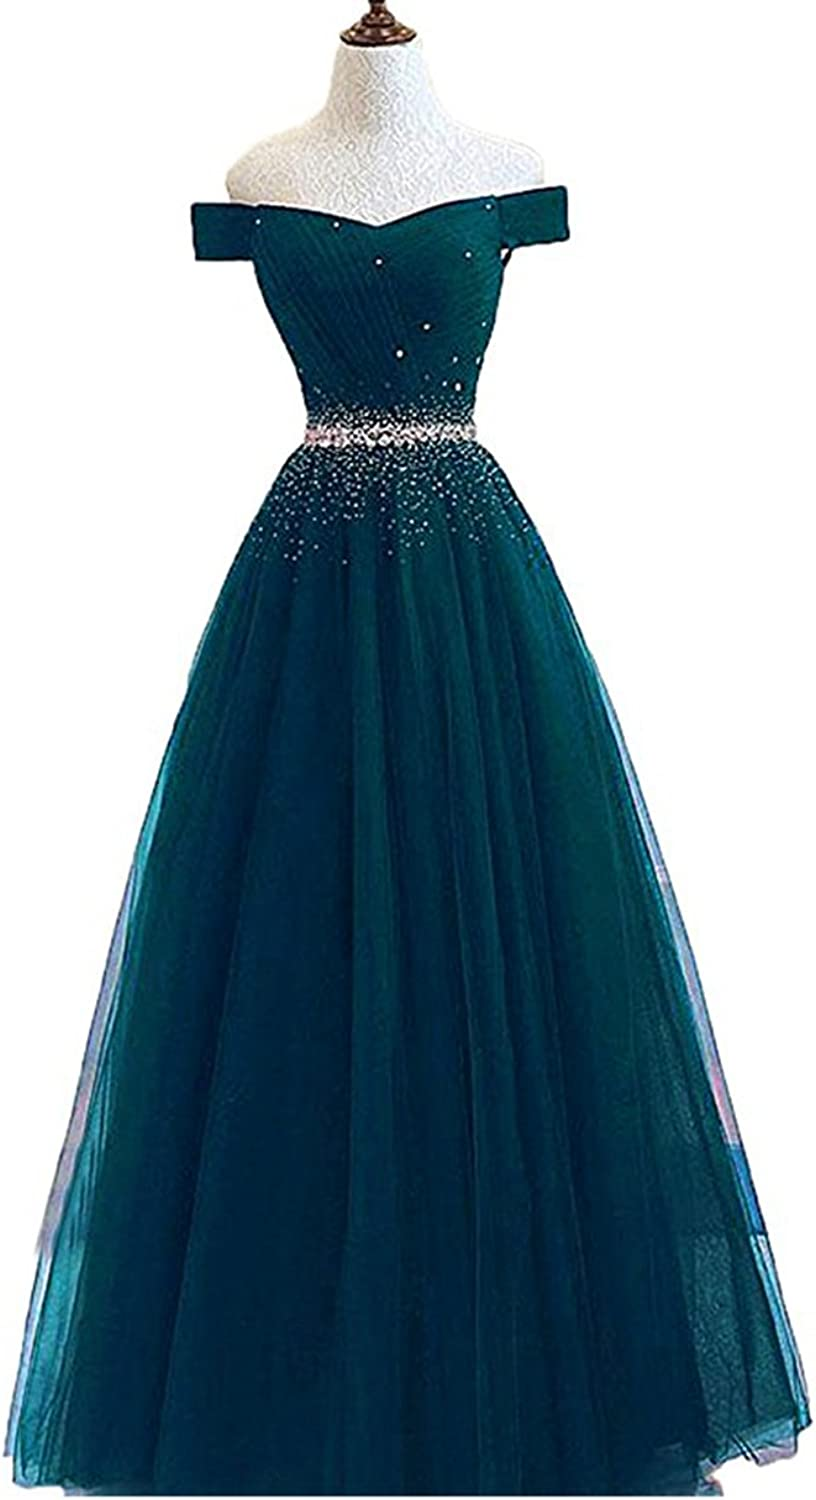 Alilith.Z Sexy Off The Shoulder A Line Prom Dresses Crystal Beaded Long Formal Evening Dresses Party Gowns for Women